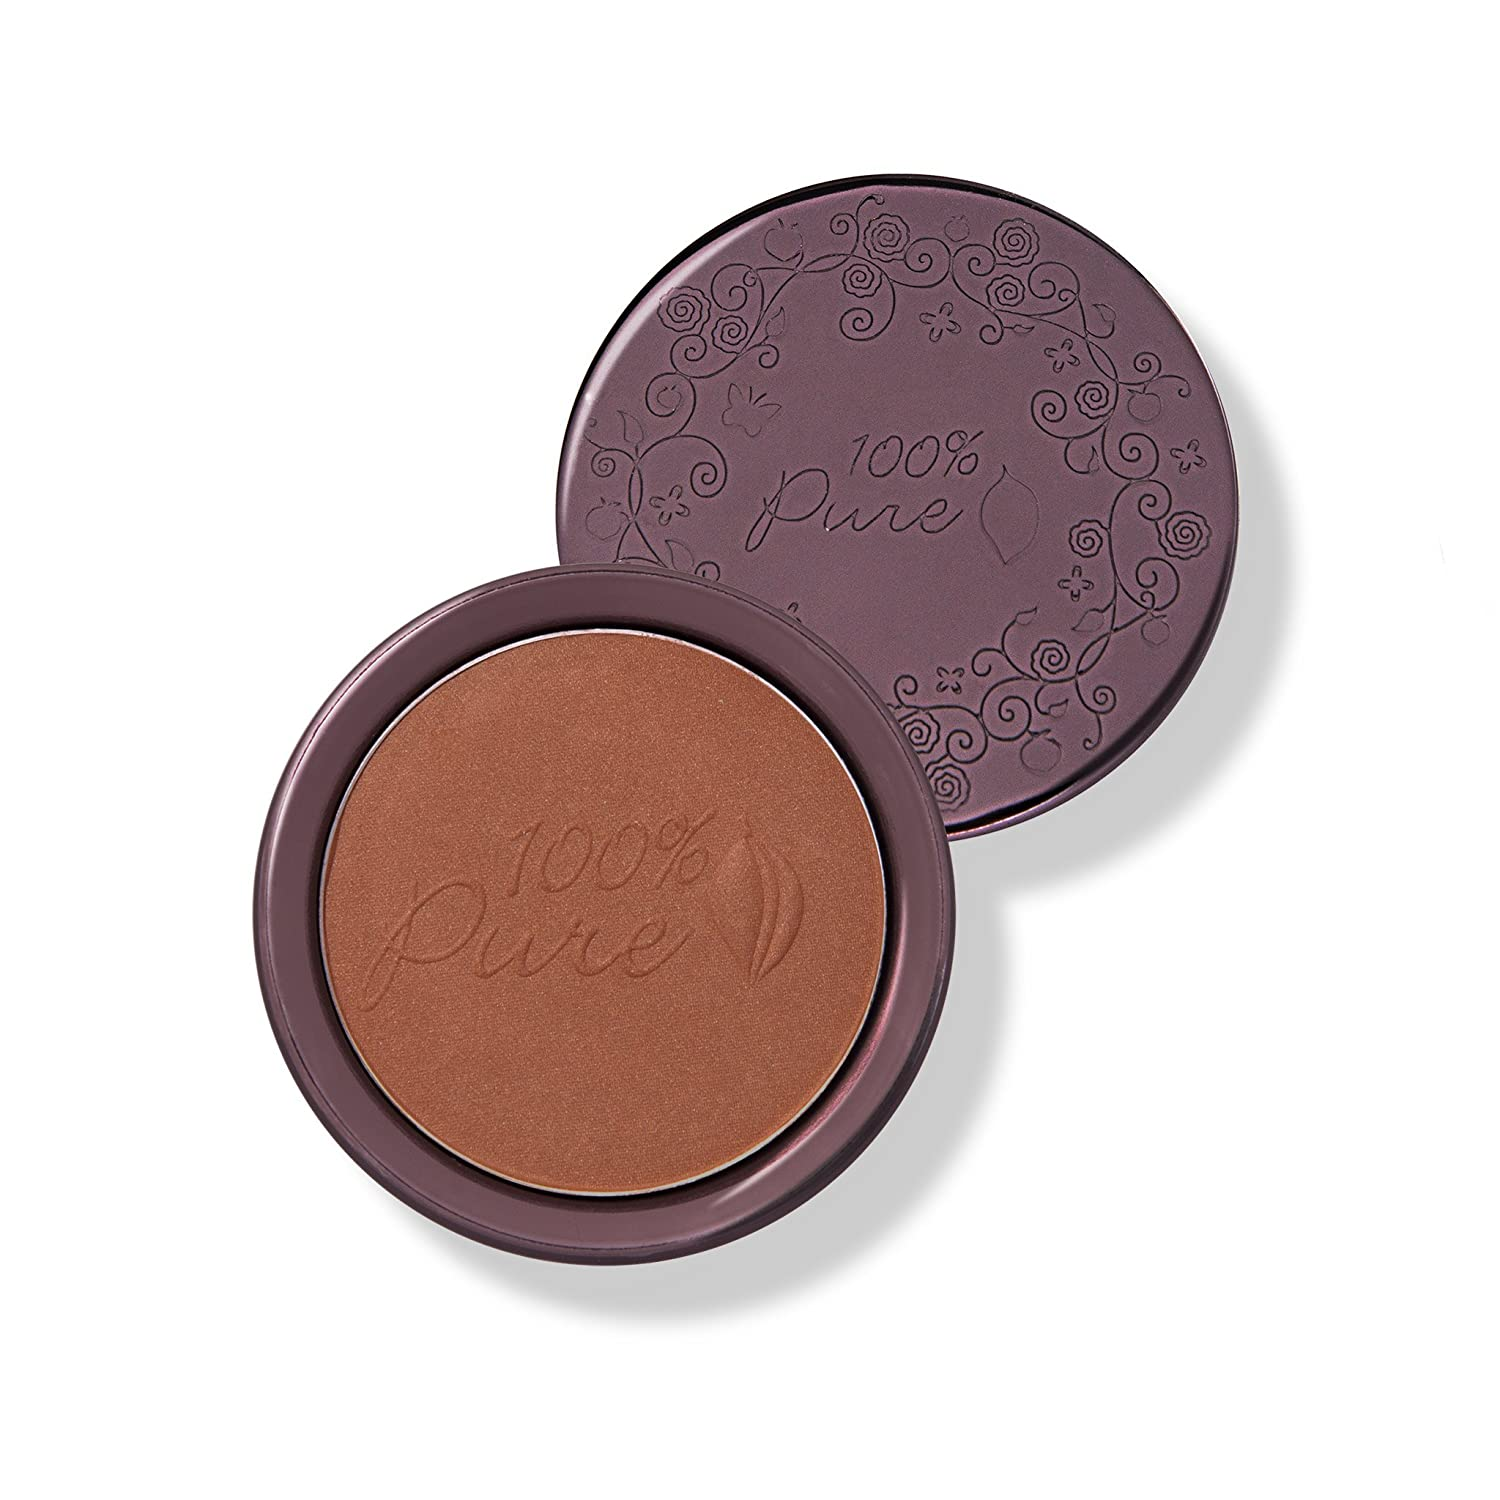 100 PURE Cocoa Pigmented Bronzer, Cocoa Glow, Bronzer Powder for Face, Contour Makeup, Soft Shimmer, Sun Kissed Glow Deep Brown w Gold-Red Undertones – 0.32 Oz